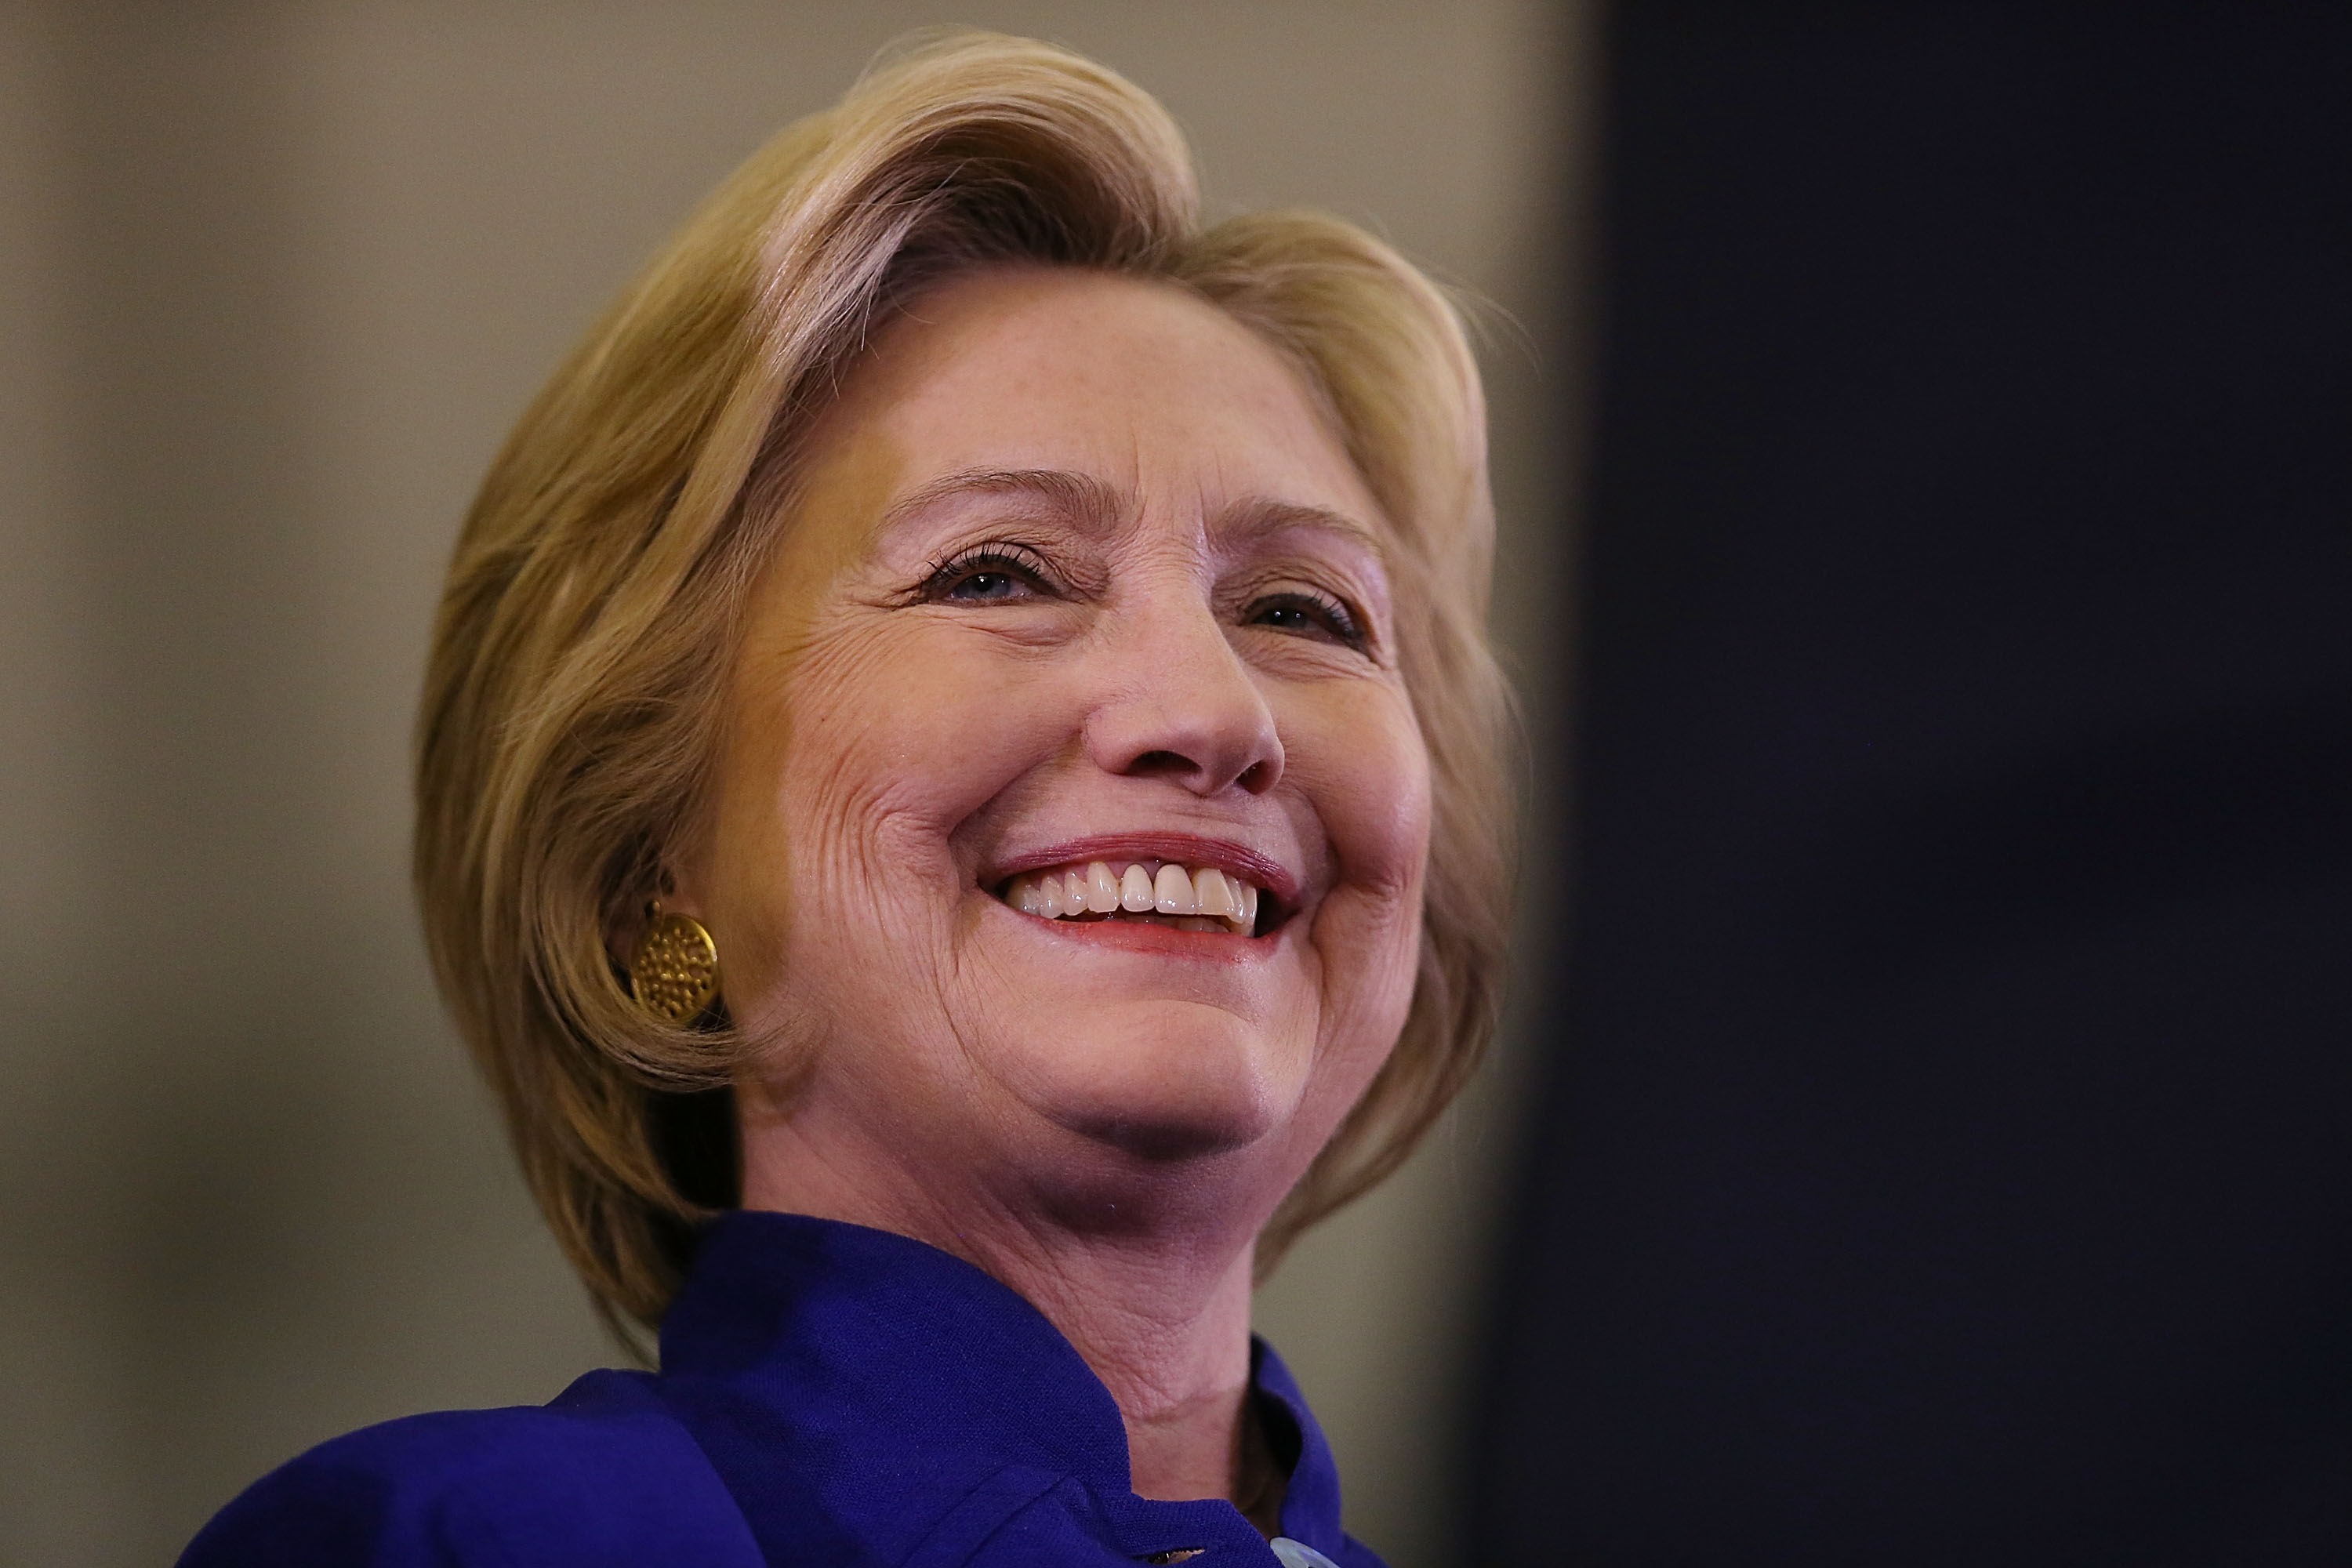 Democratic presidential candidate Hillary Clinton attends a rally on June 1, 2016 in Newark, New Jersey. Clinton will head back to California tomorrow where she is in a tight race with Democratic challenger Sen. Bernie Sanders (D-VT).